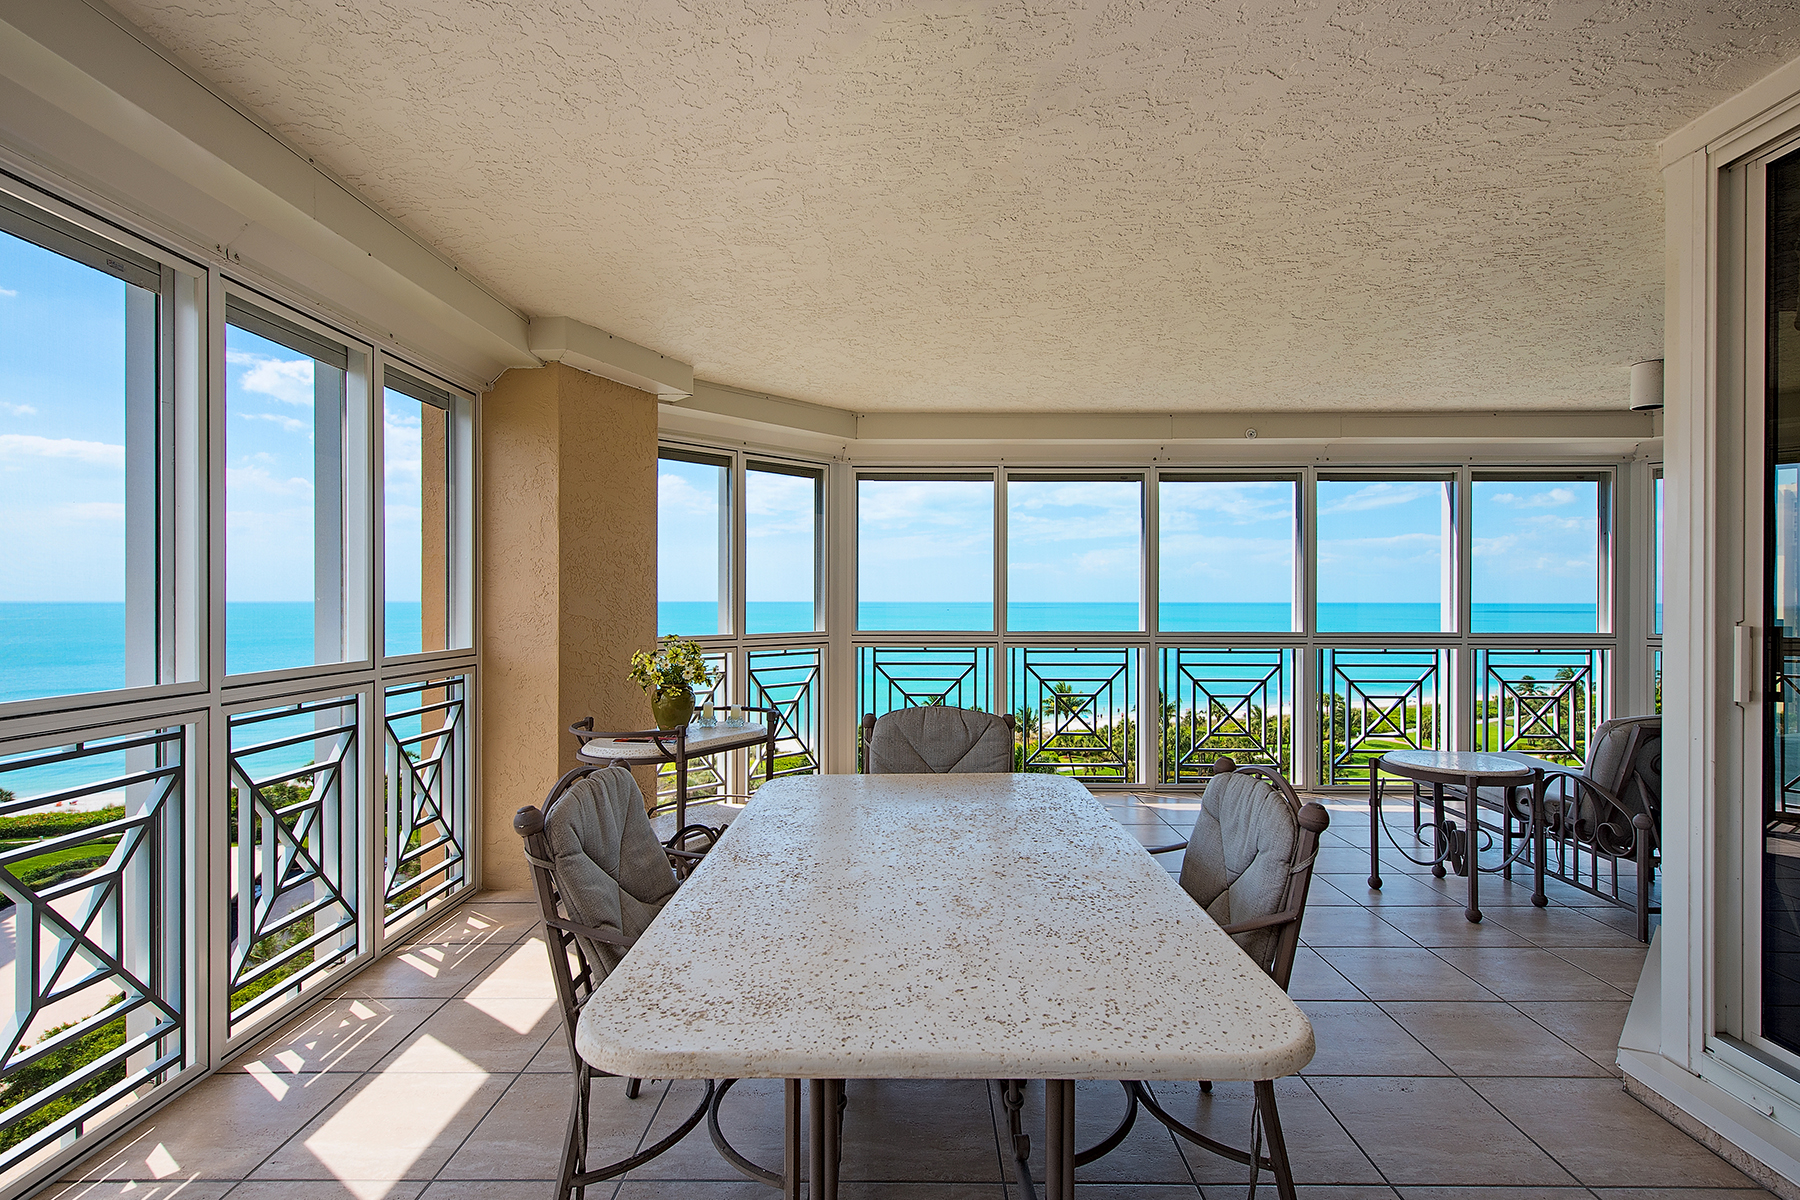 Condominium for Sale at PARK SHORE - BRITTANY 4021 Gulf Shore Blvd N 801, Naples, Florida 34103 United States